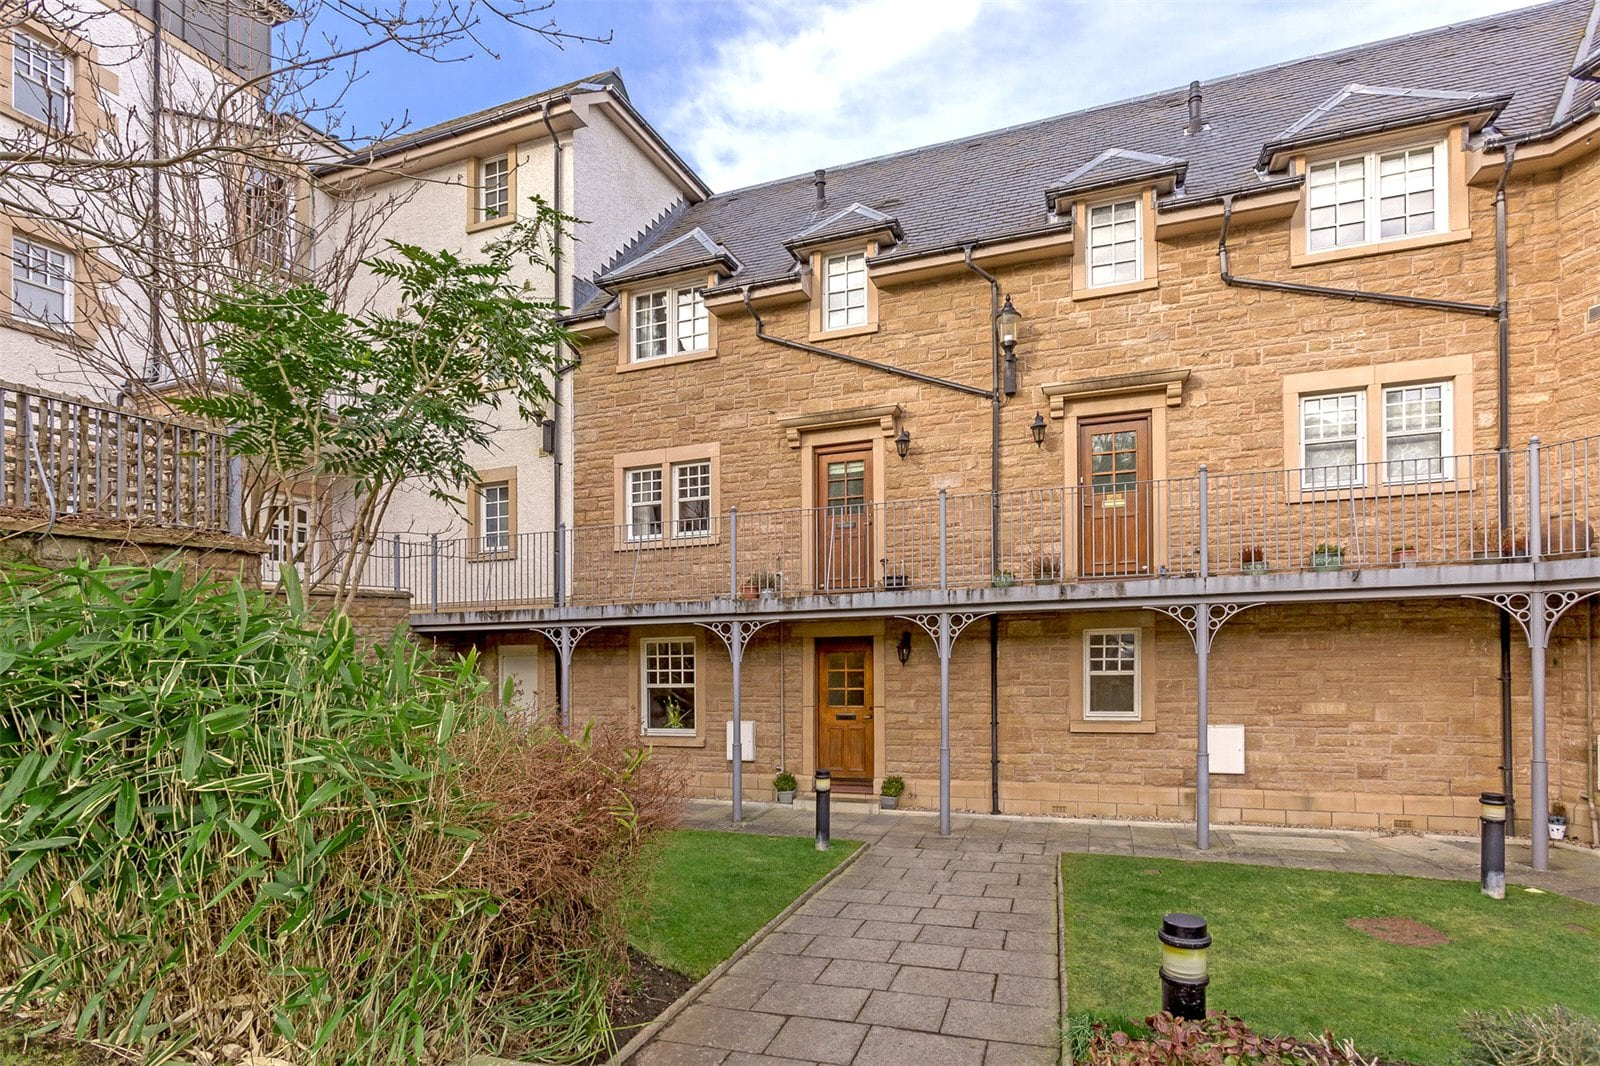 Immaculate flat in a sought-after Edinburgh location